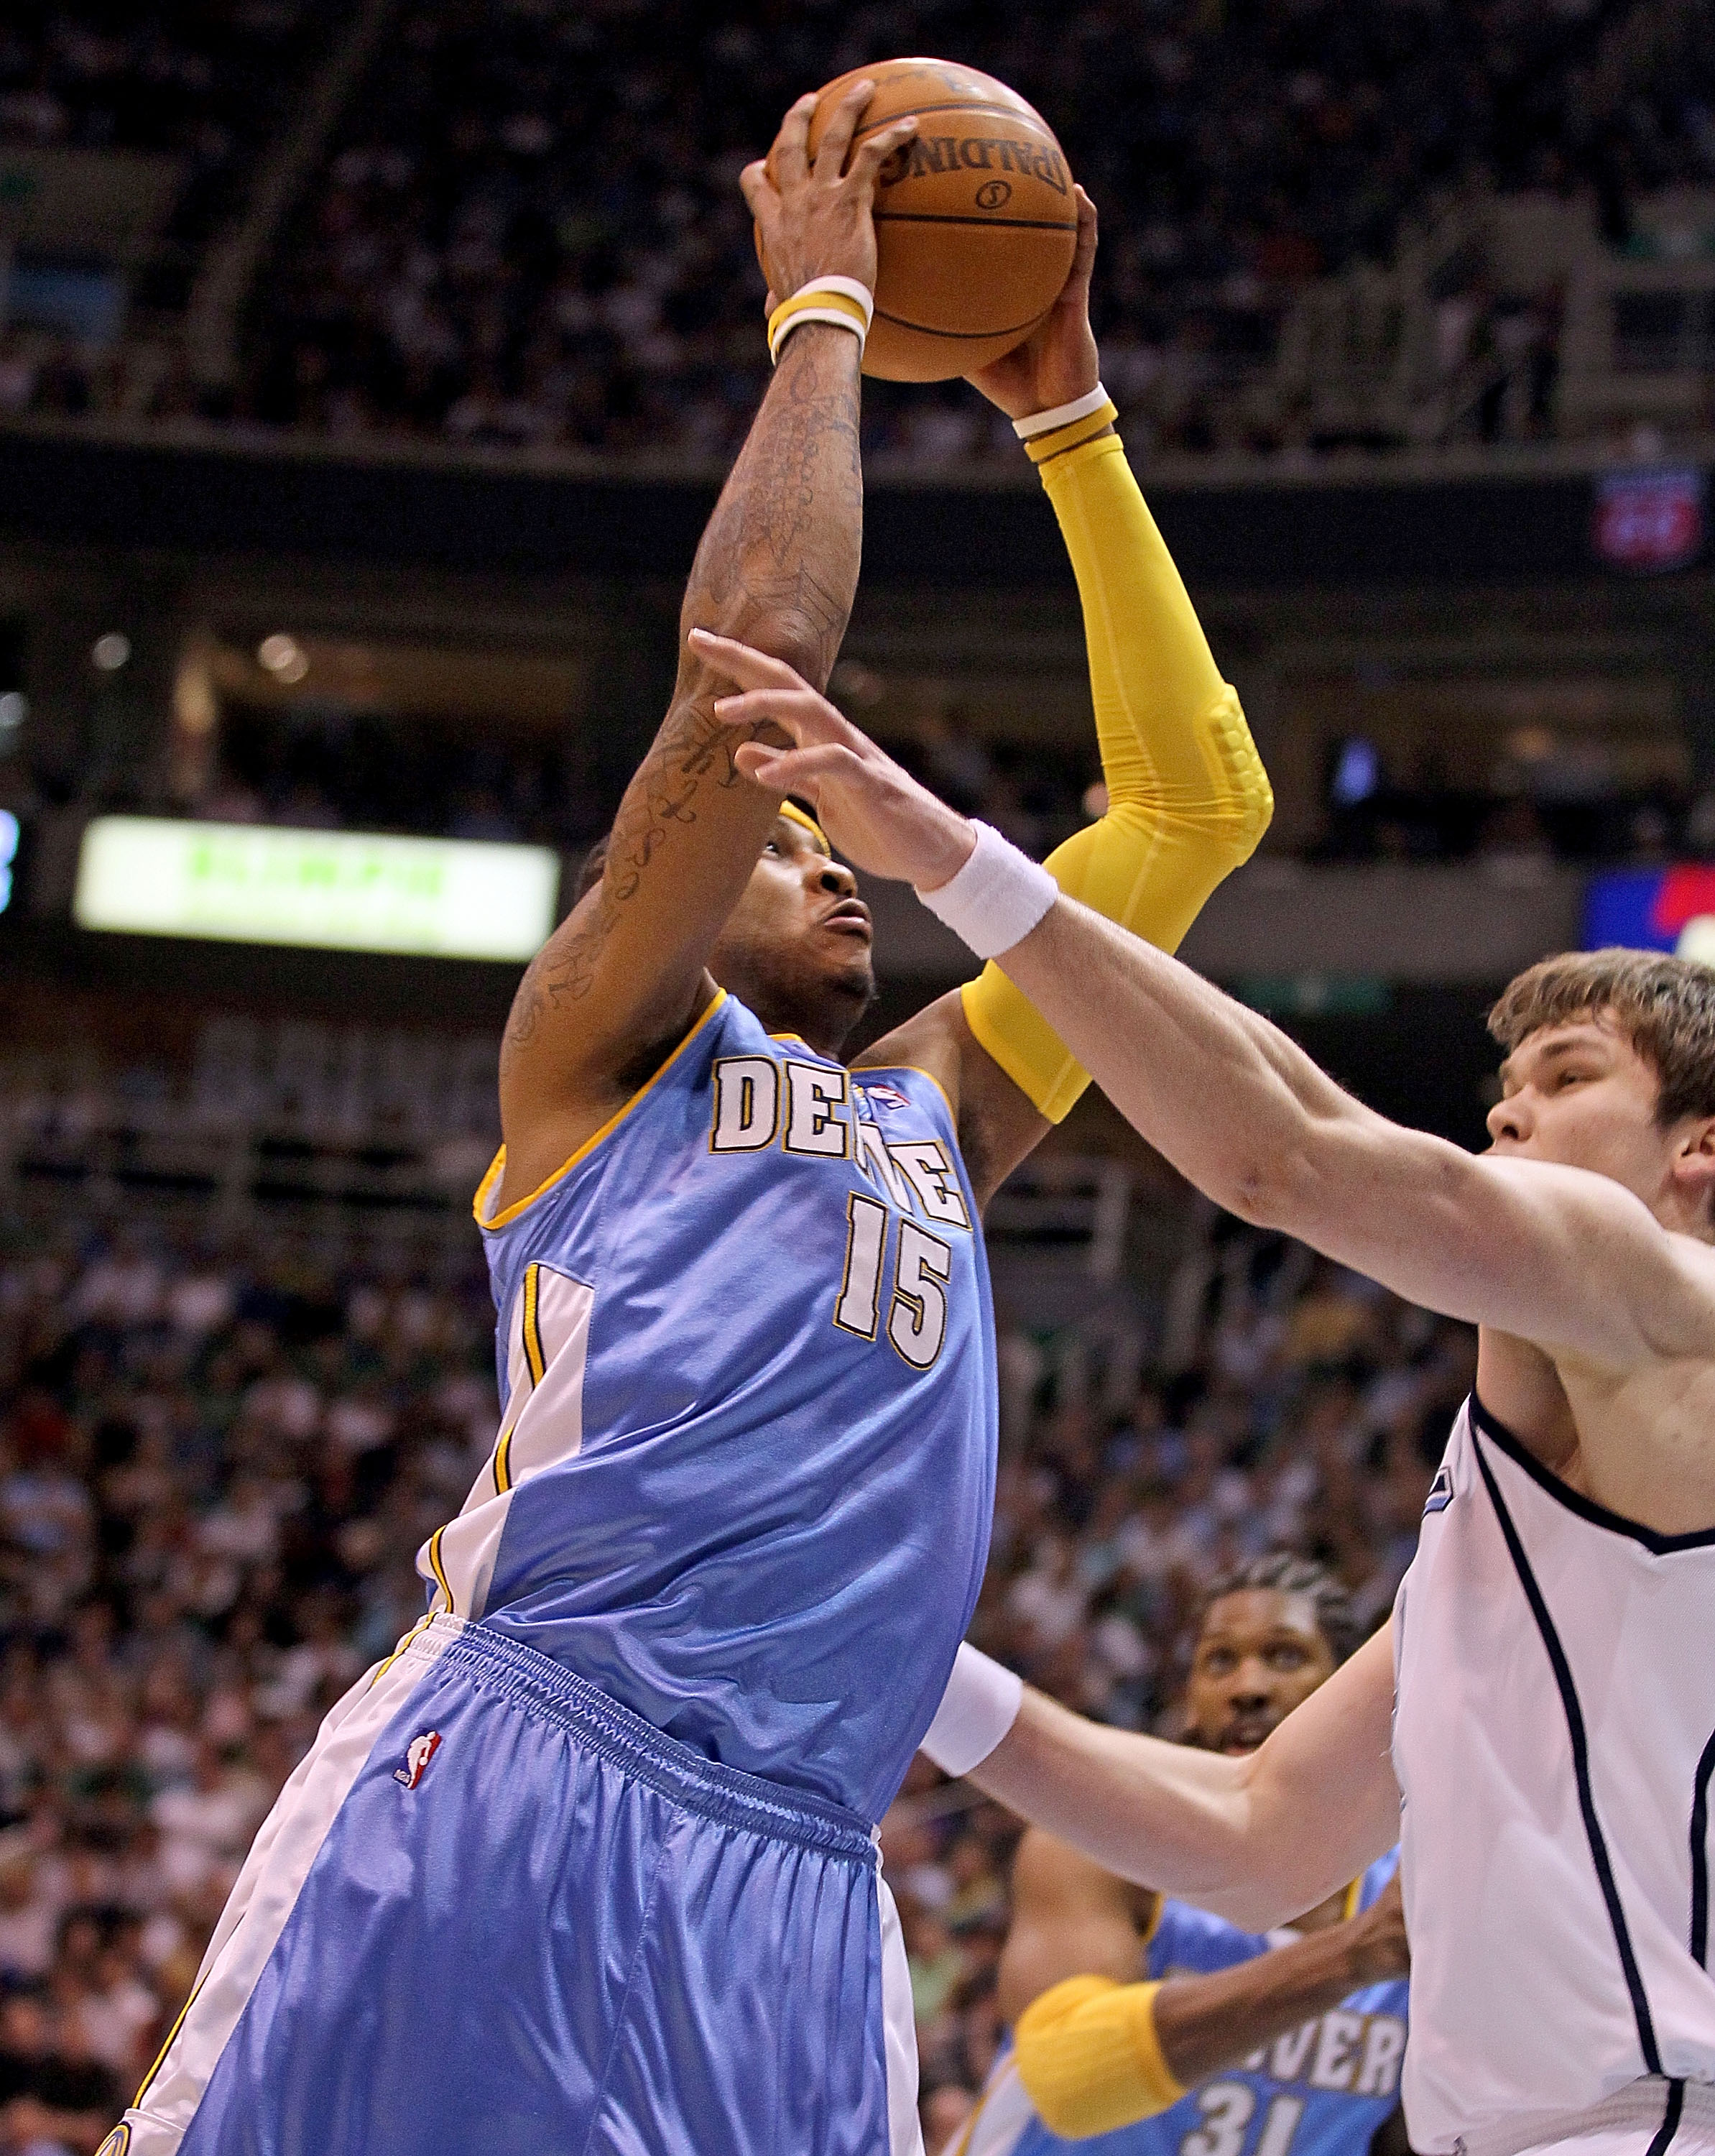 SALT LAKE CITY - APRIL 25:  Carmelo Anthony #15 of the Denver Nuggets shoots the ball against the Utah Jazz during  Game Four of the Western Conference Quarterfinals of the 2010 NBA Playoffs at EnergySolutions Arena on April 25, 2010 in Salt Lake City, Ut